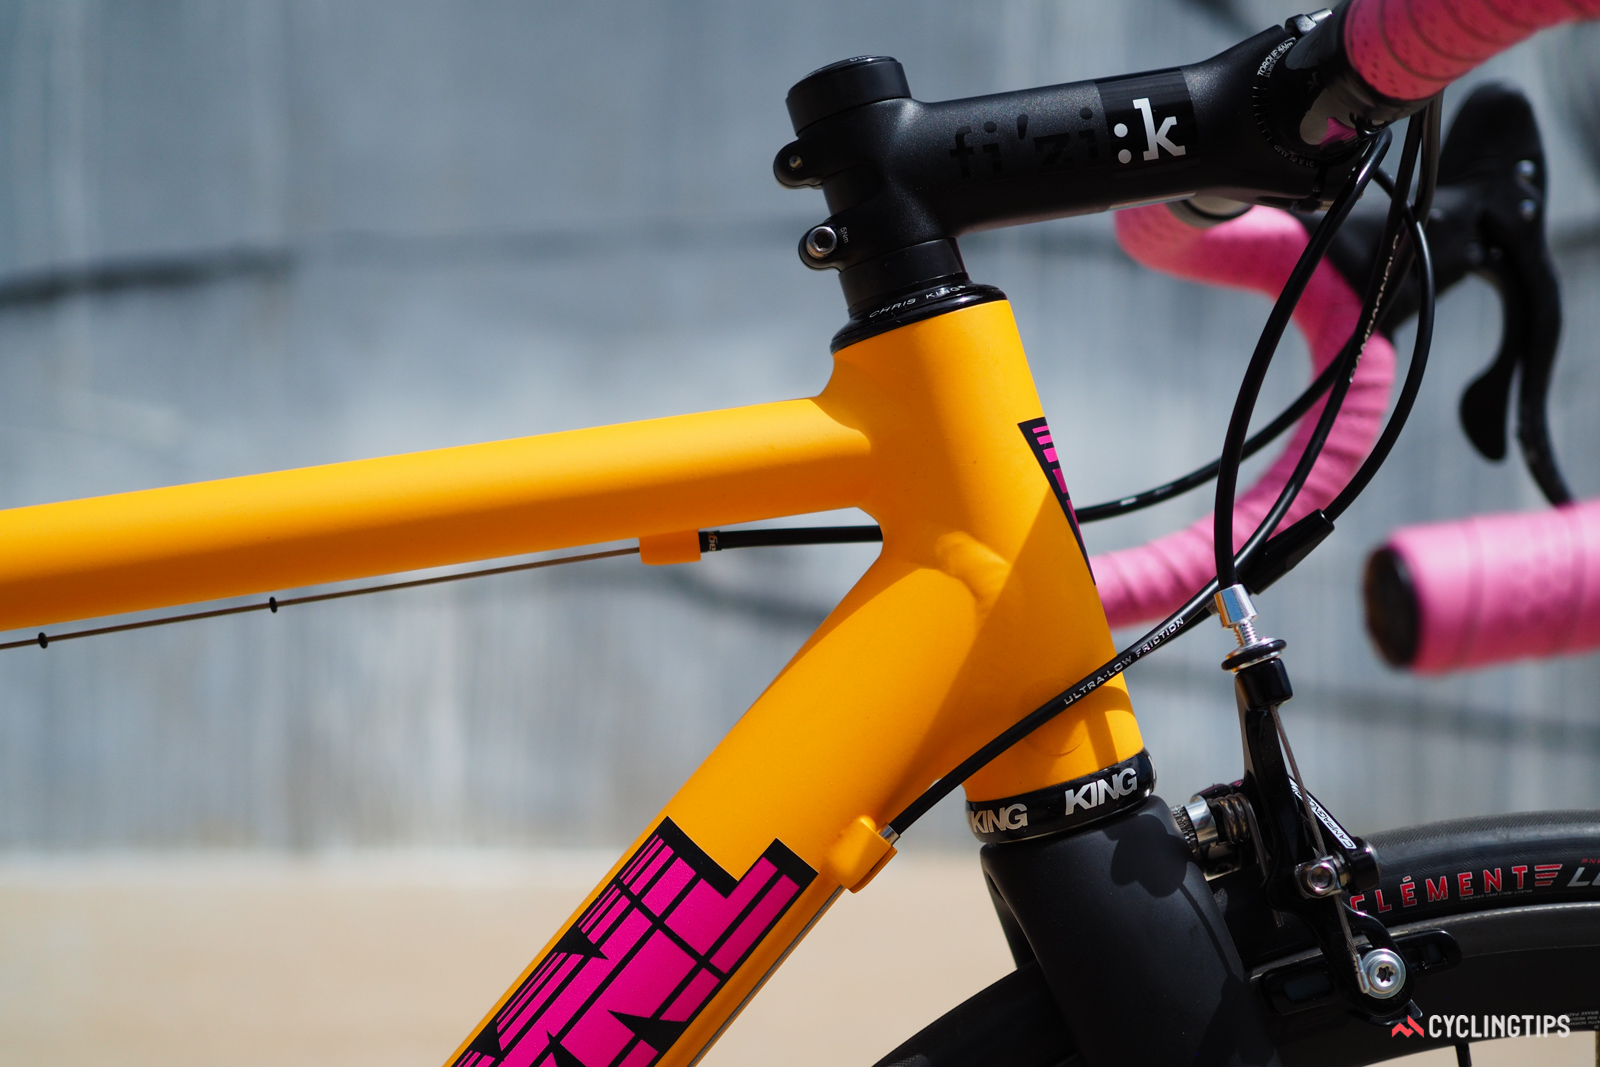 As the company's name suggests, VYNL doesn't concern itself with frills, preferring instead to offer purpose-built aluminum racing frames that are made in the United States.